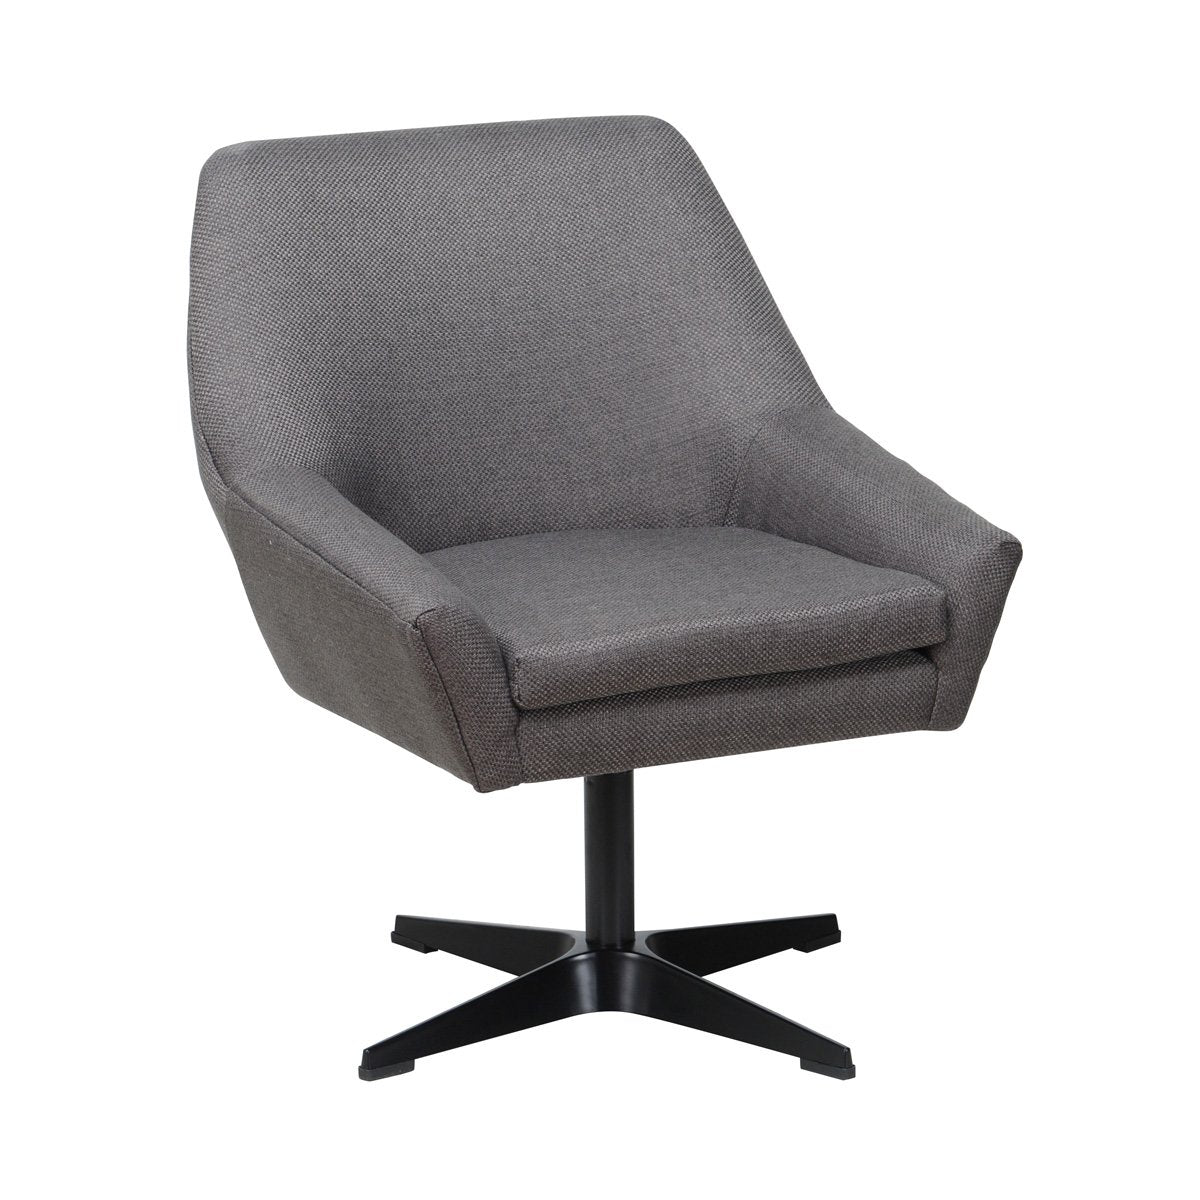 Zander Swivel Chair